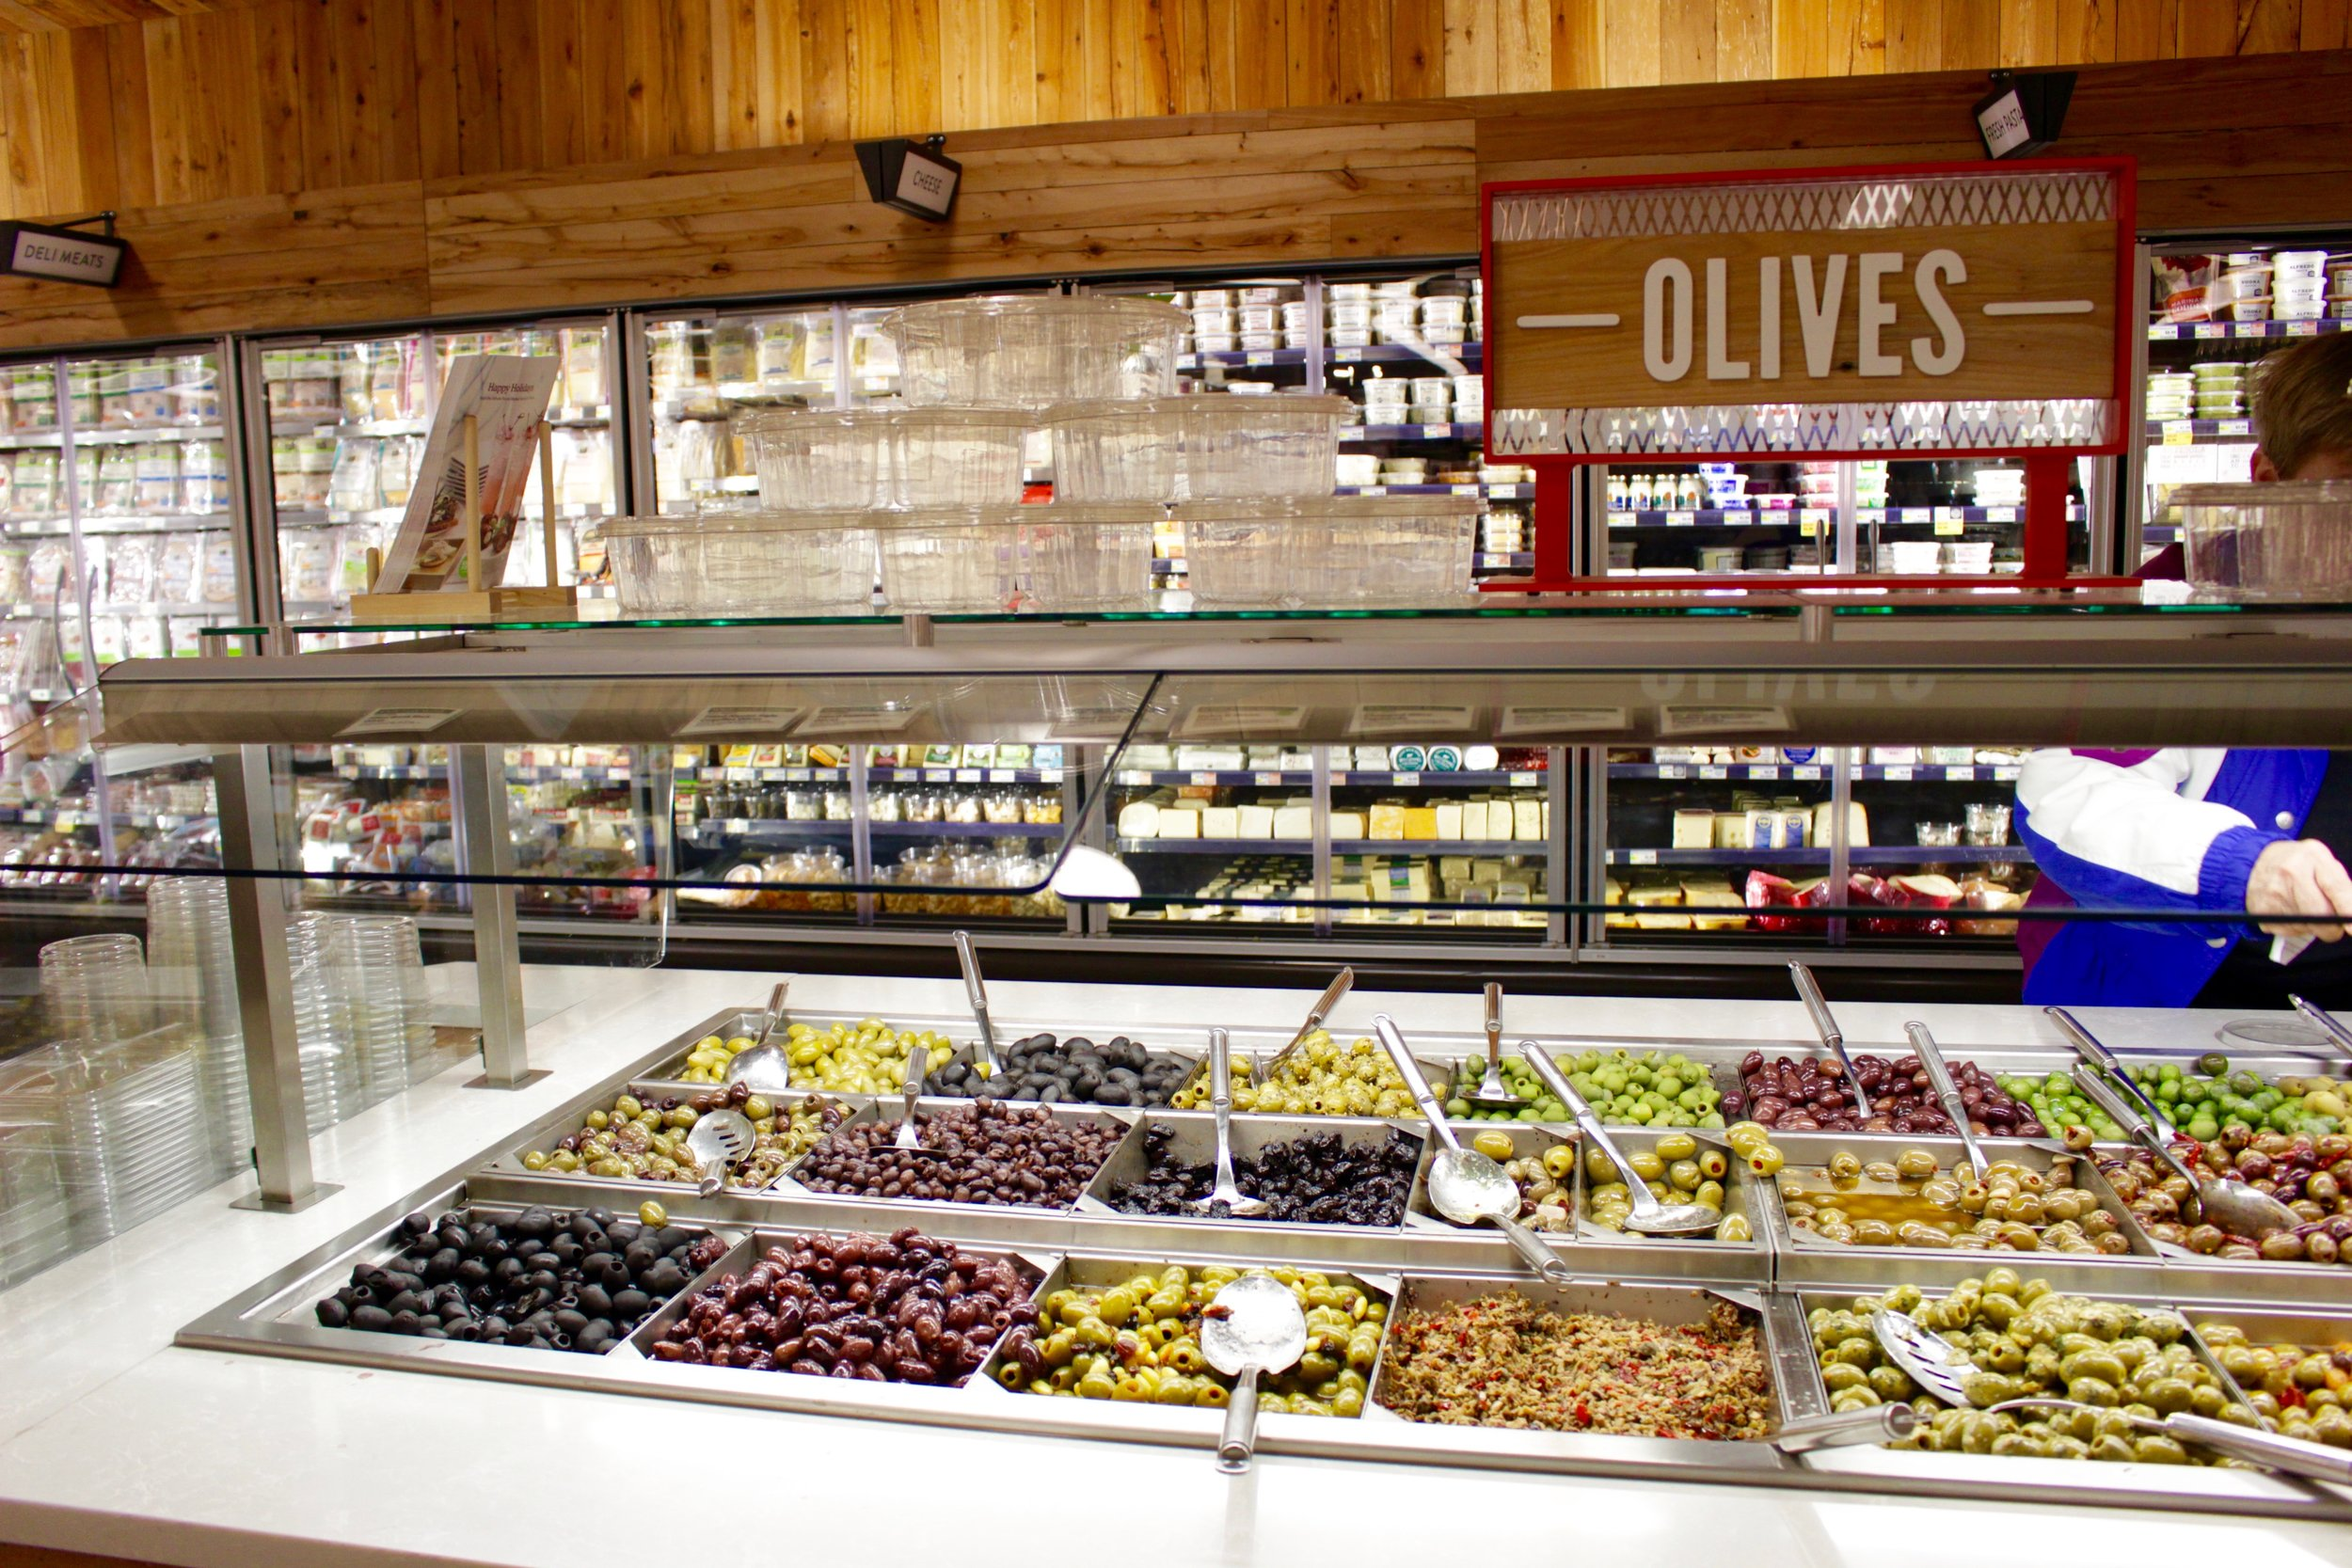 Olives, anyone? Check out the incredible spread they have at Whole Foods.